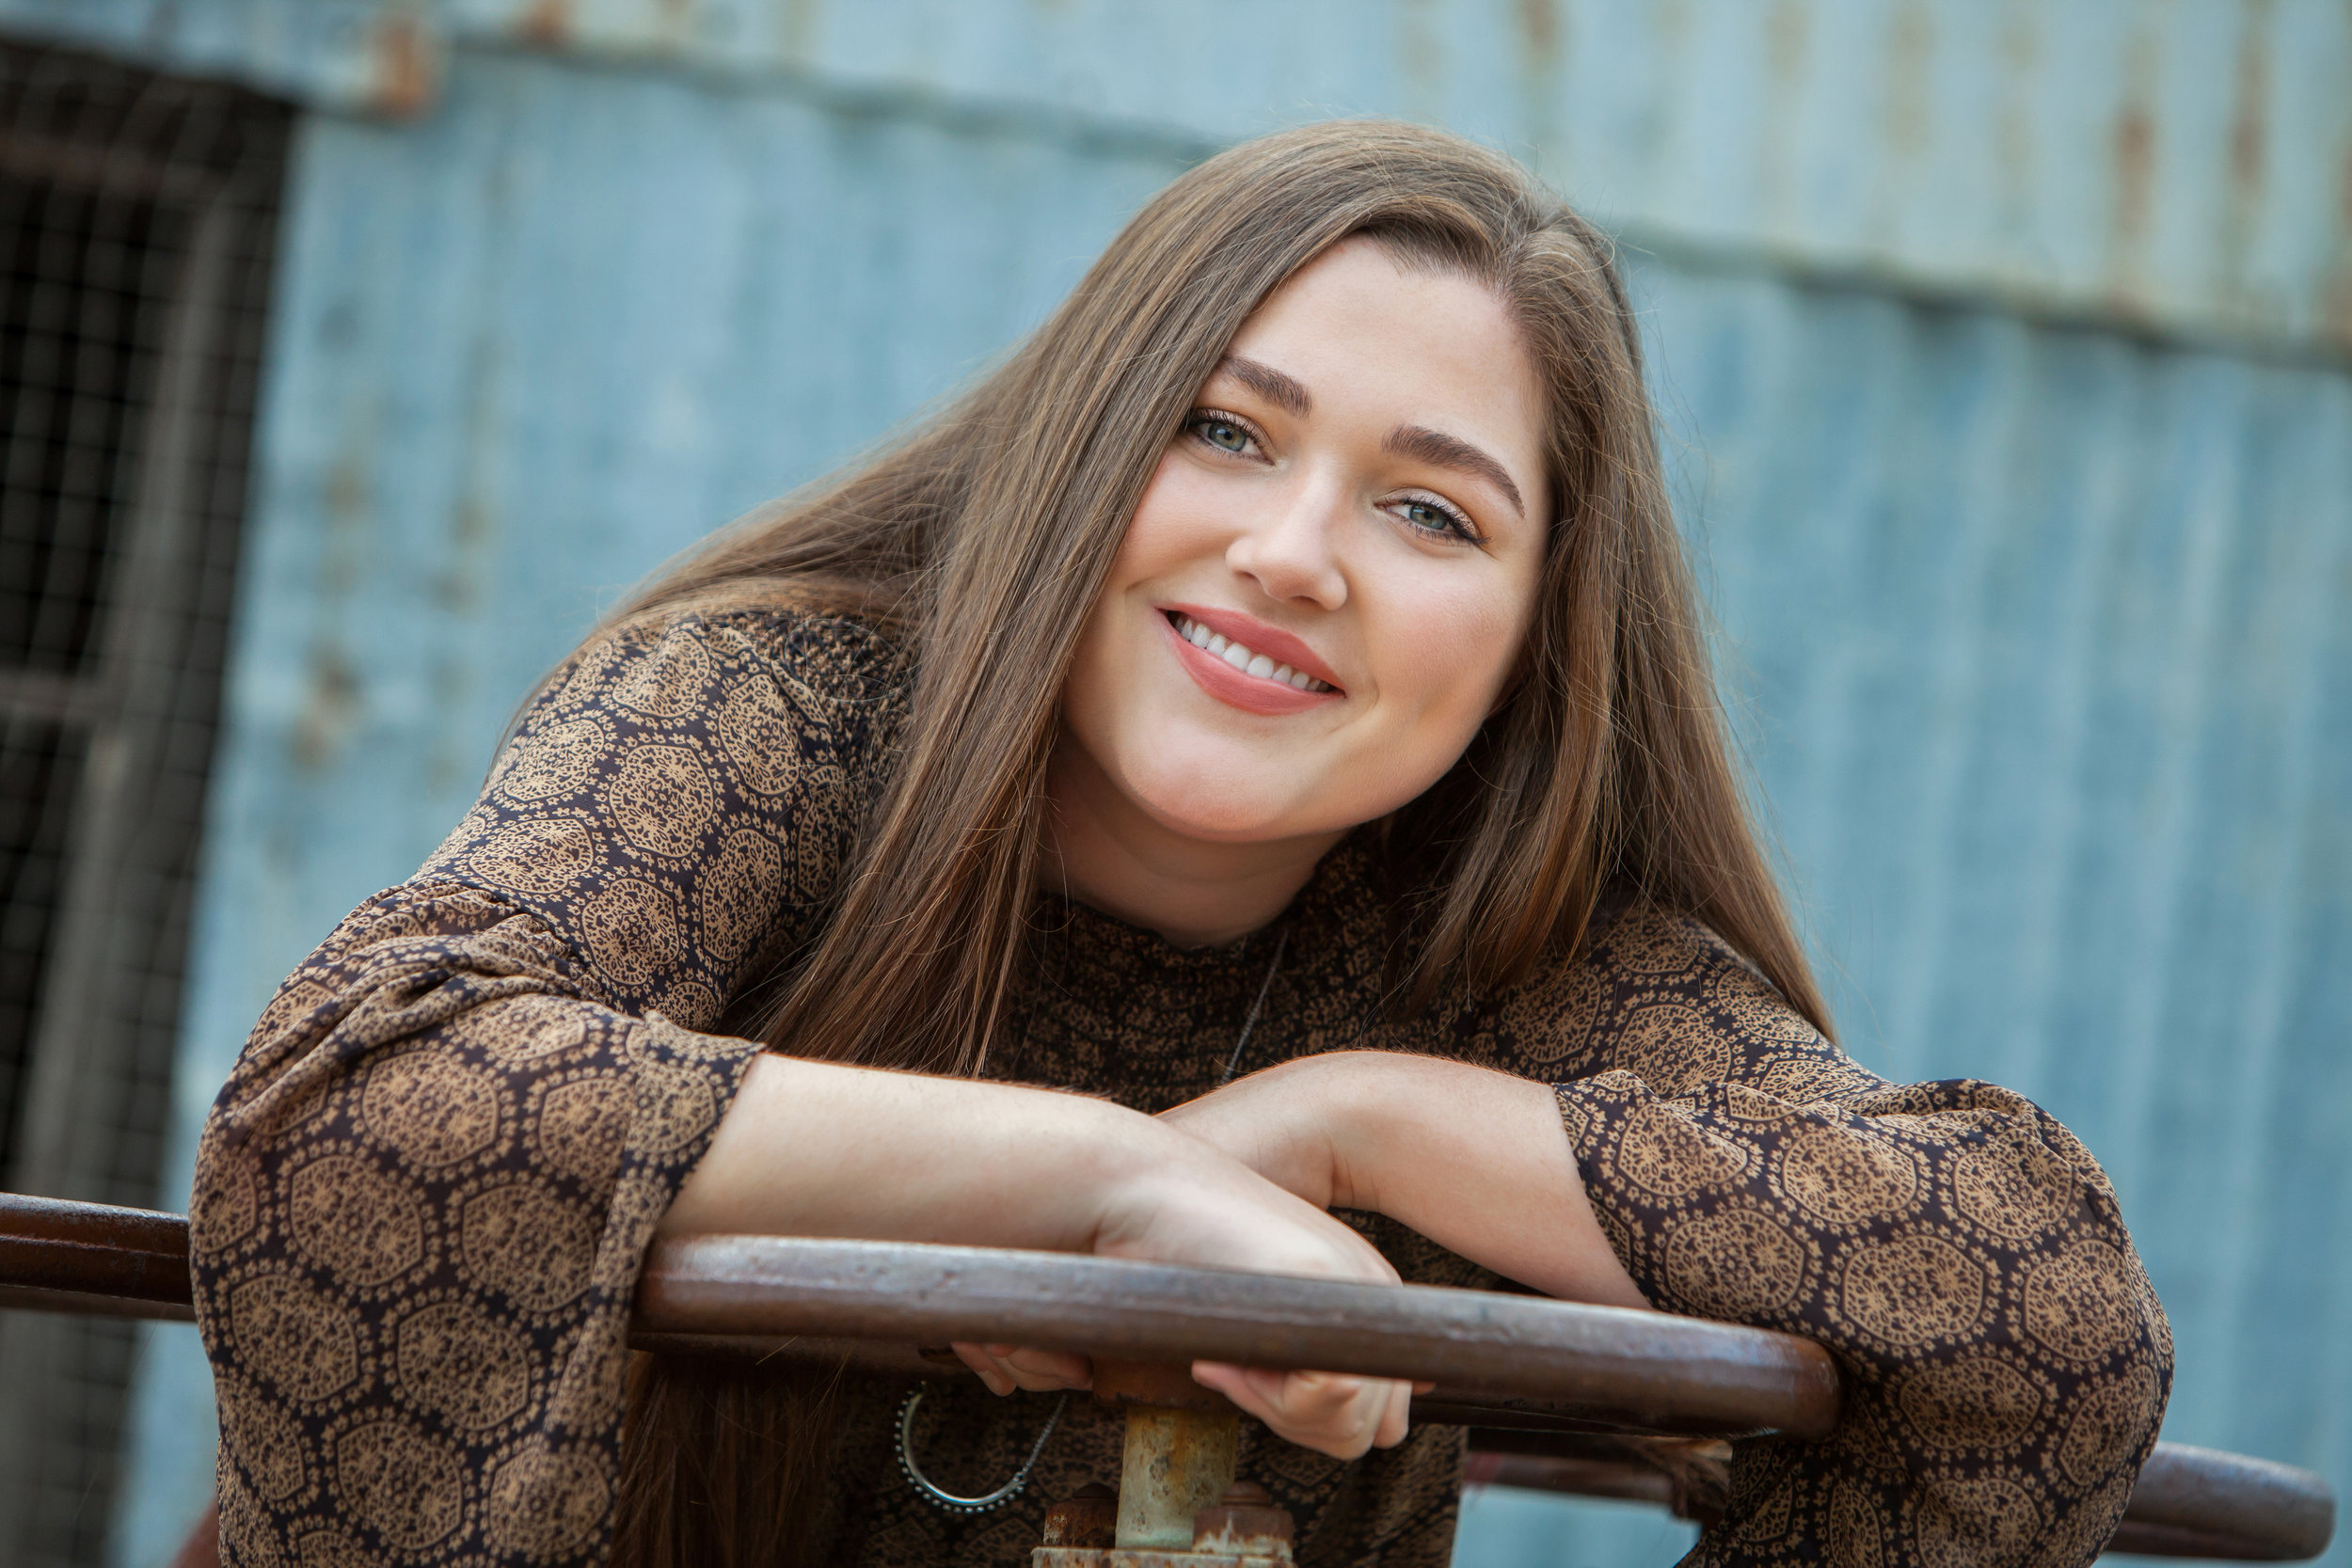 Professional High School Senior Photography Images For Girls